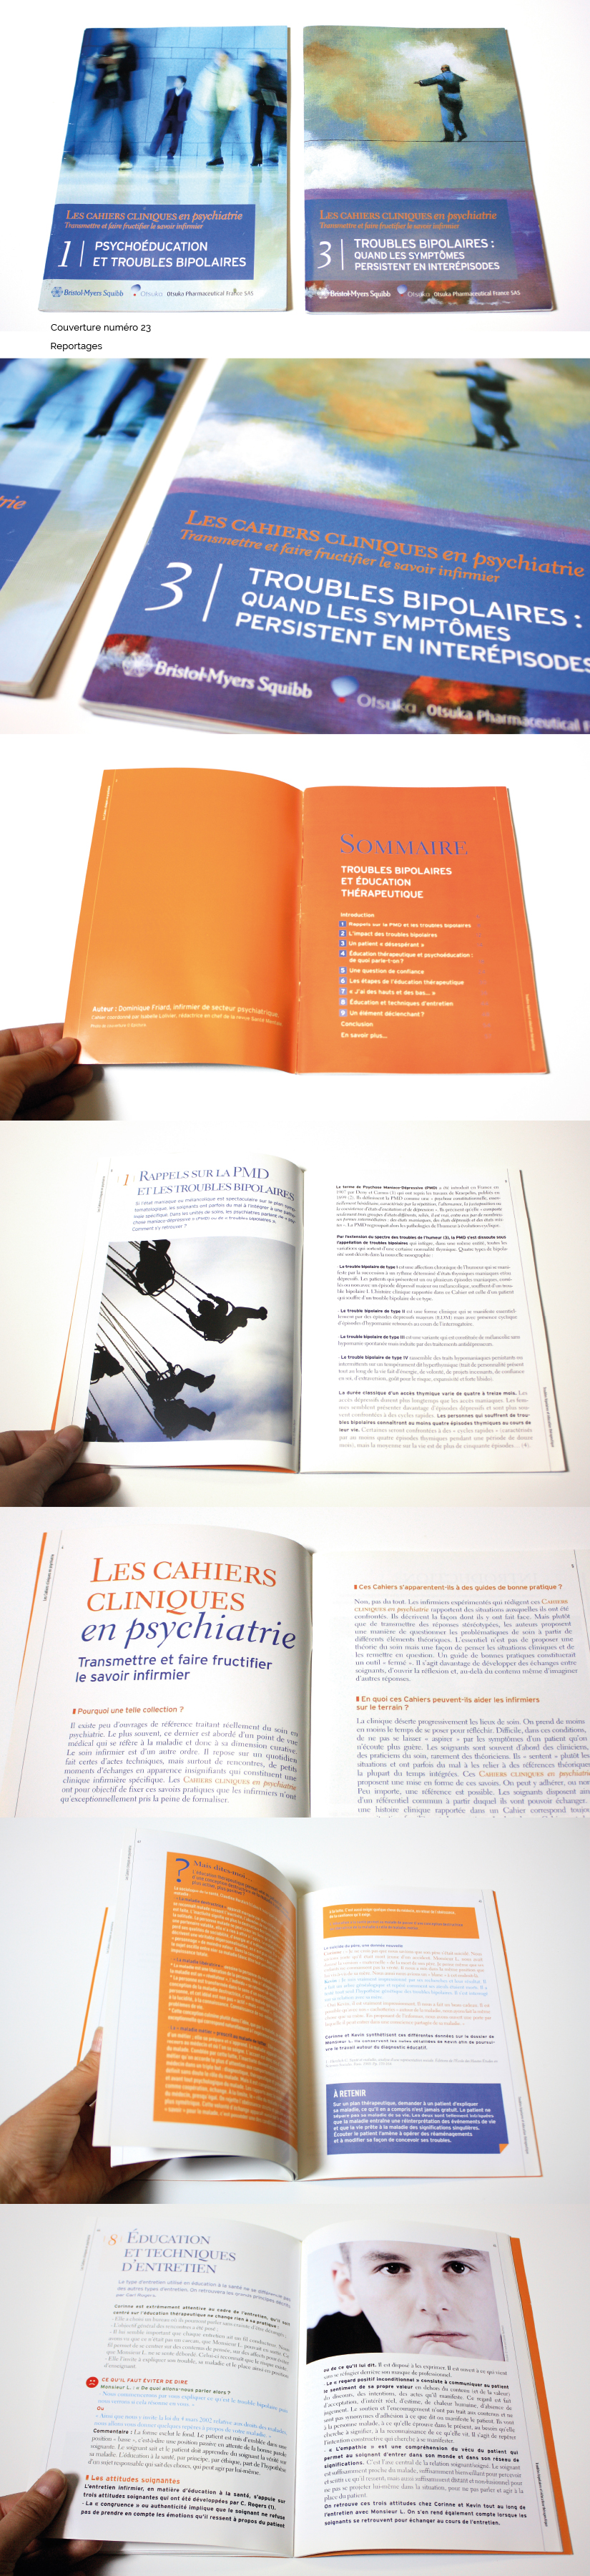 brochure 60 pages